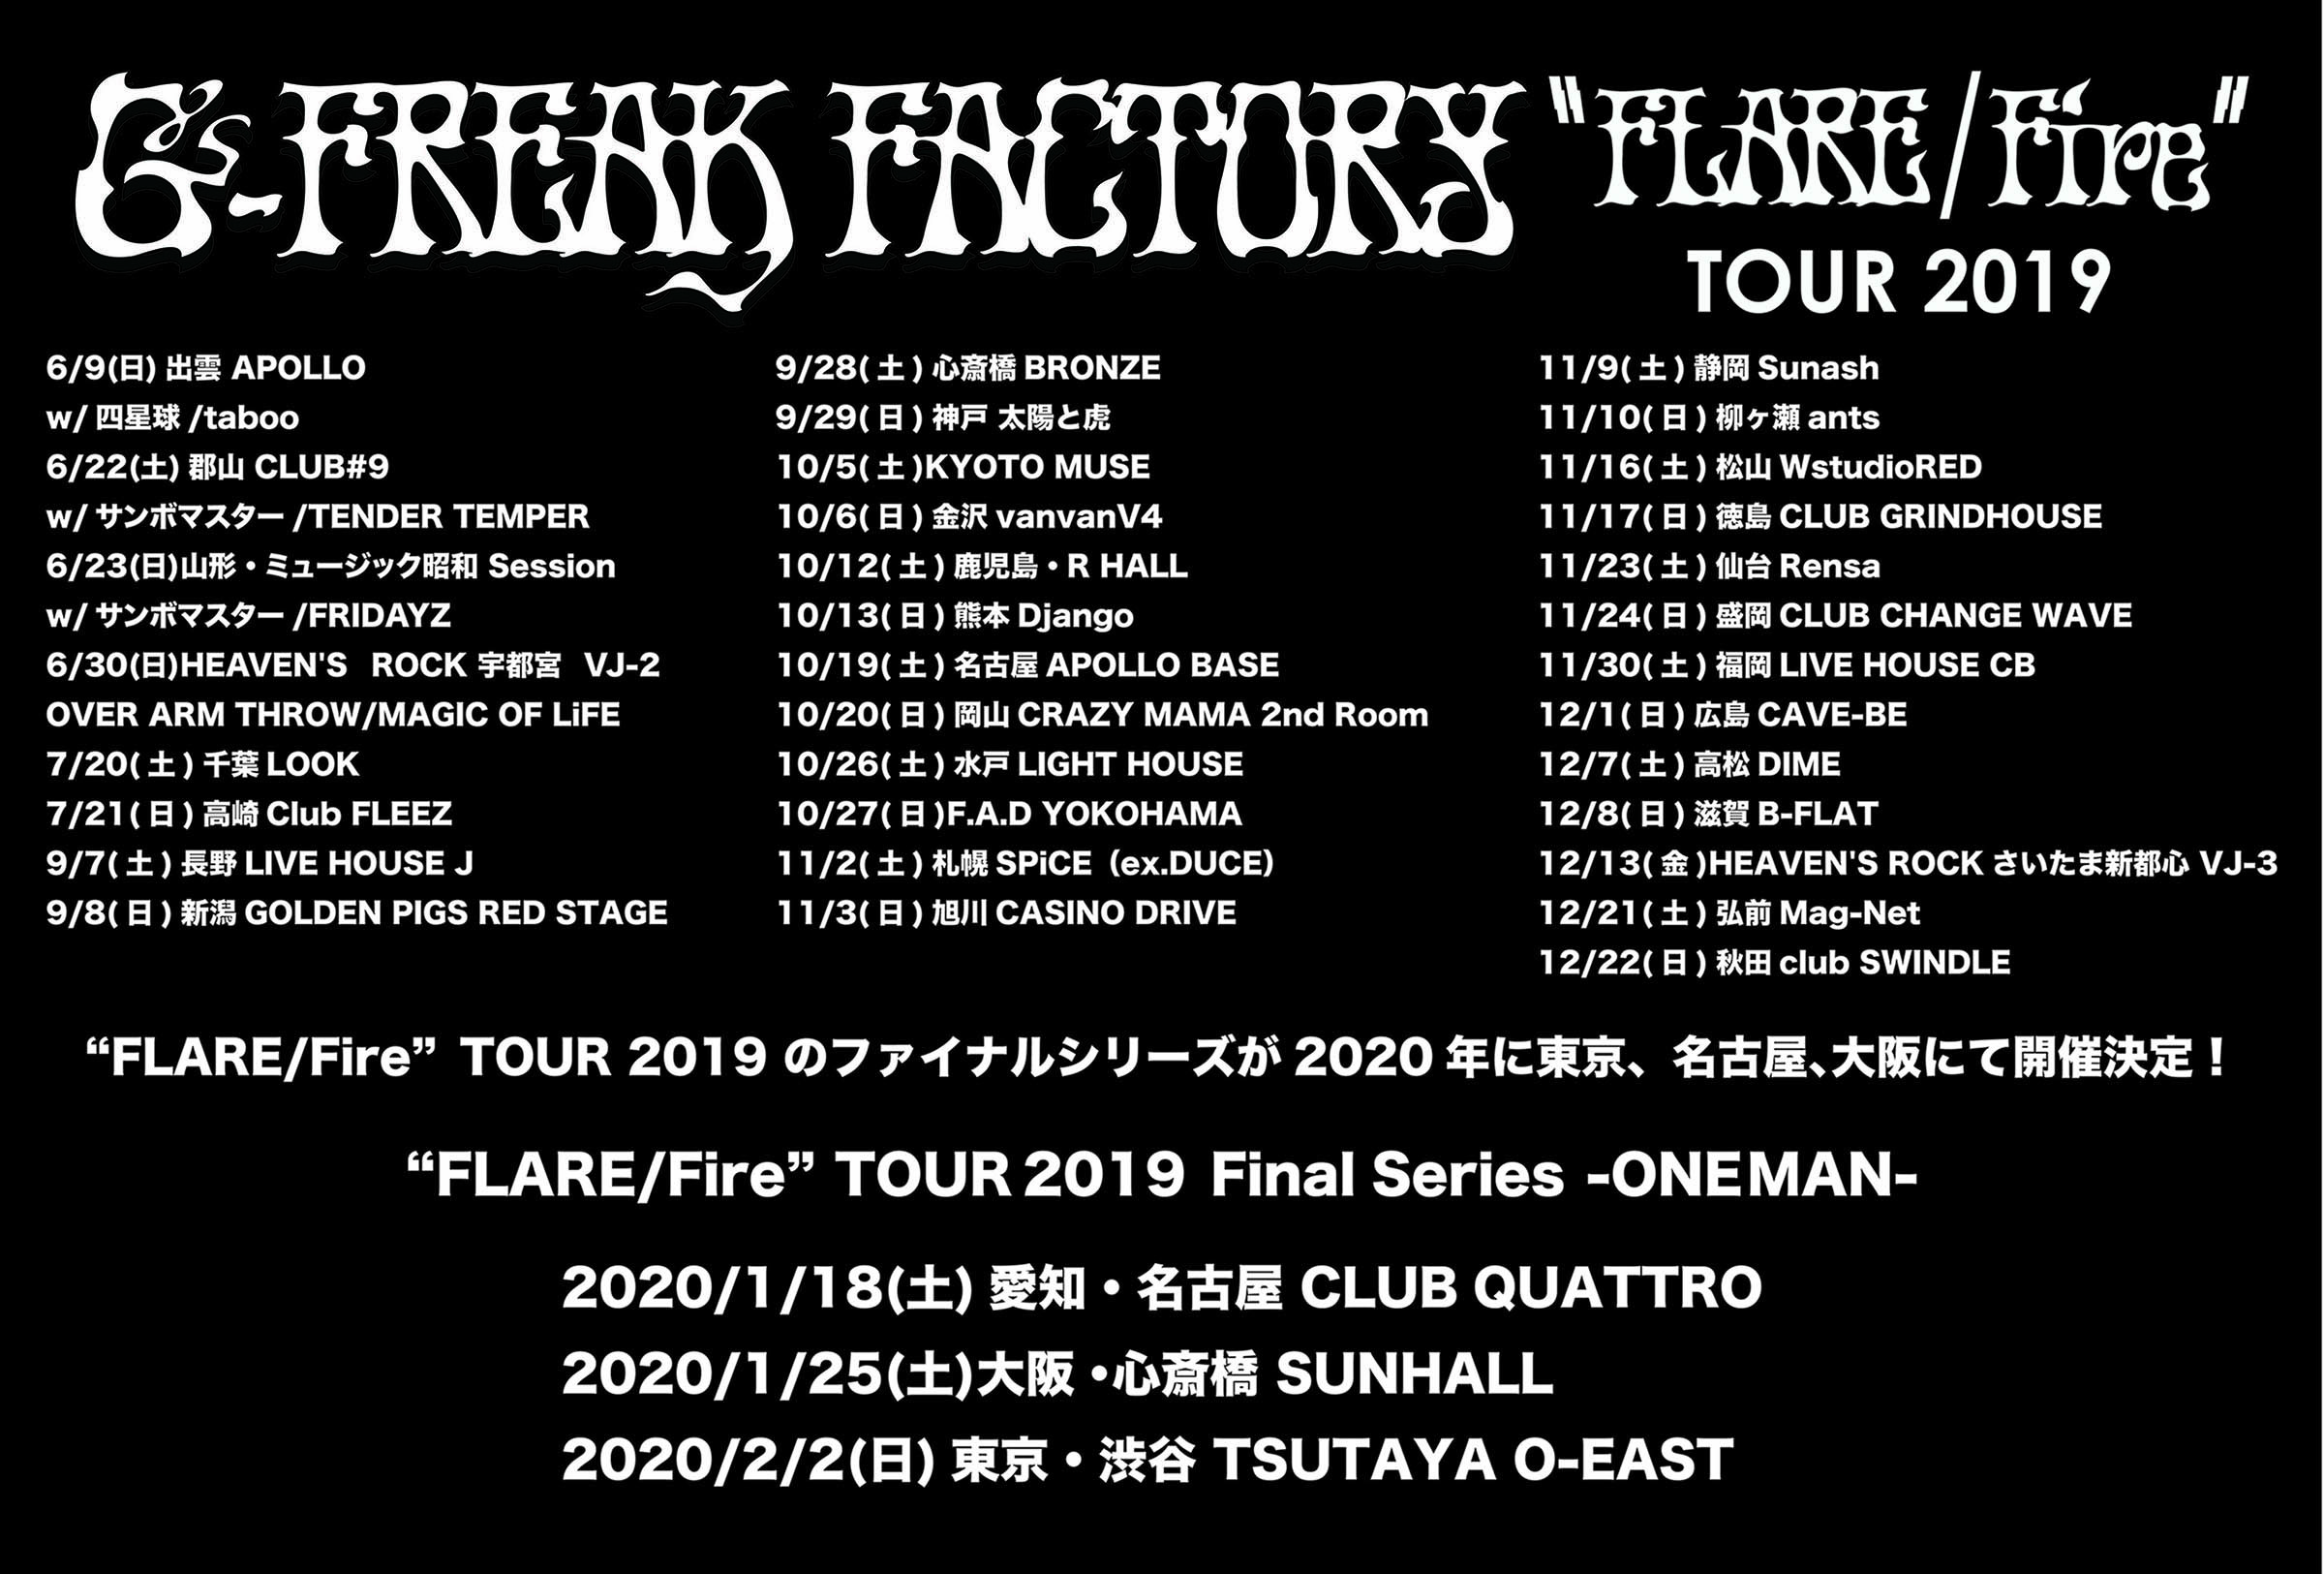 """FLARE/Fire"" TOUR 2019のファイナルシリーズが2020年に東京、名古屋、大阪にて開催決定!"